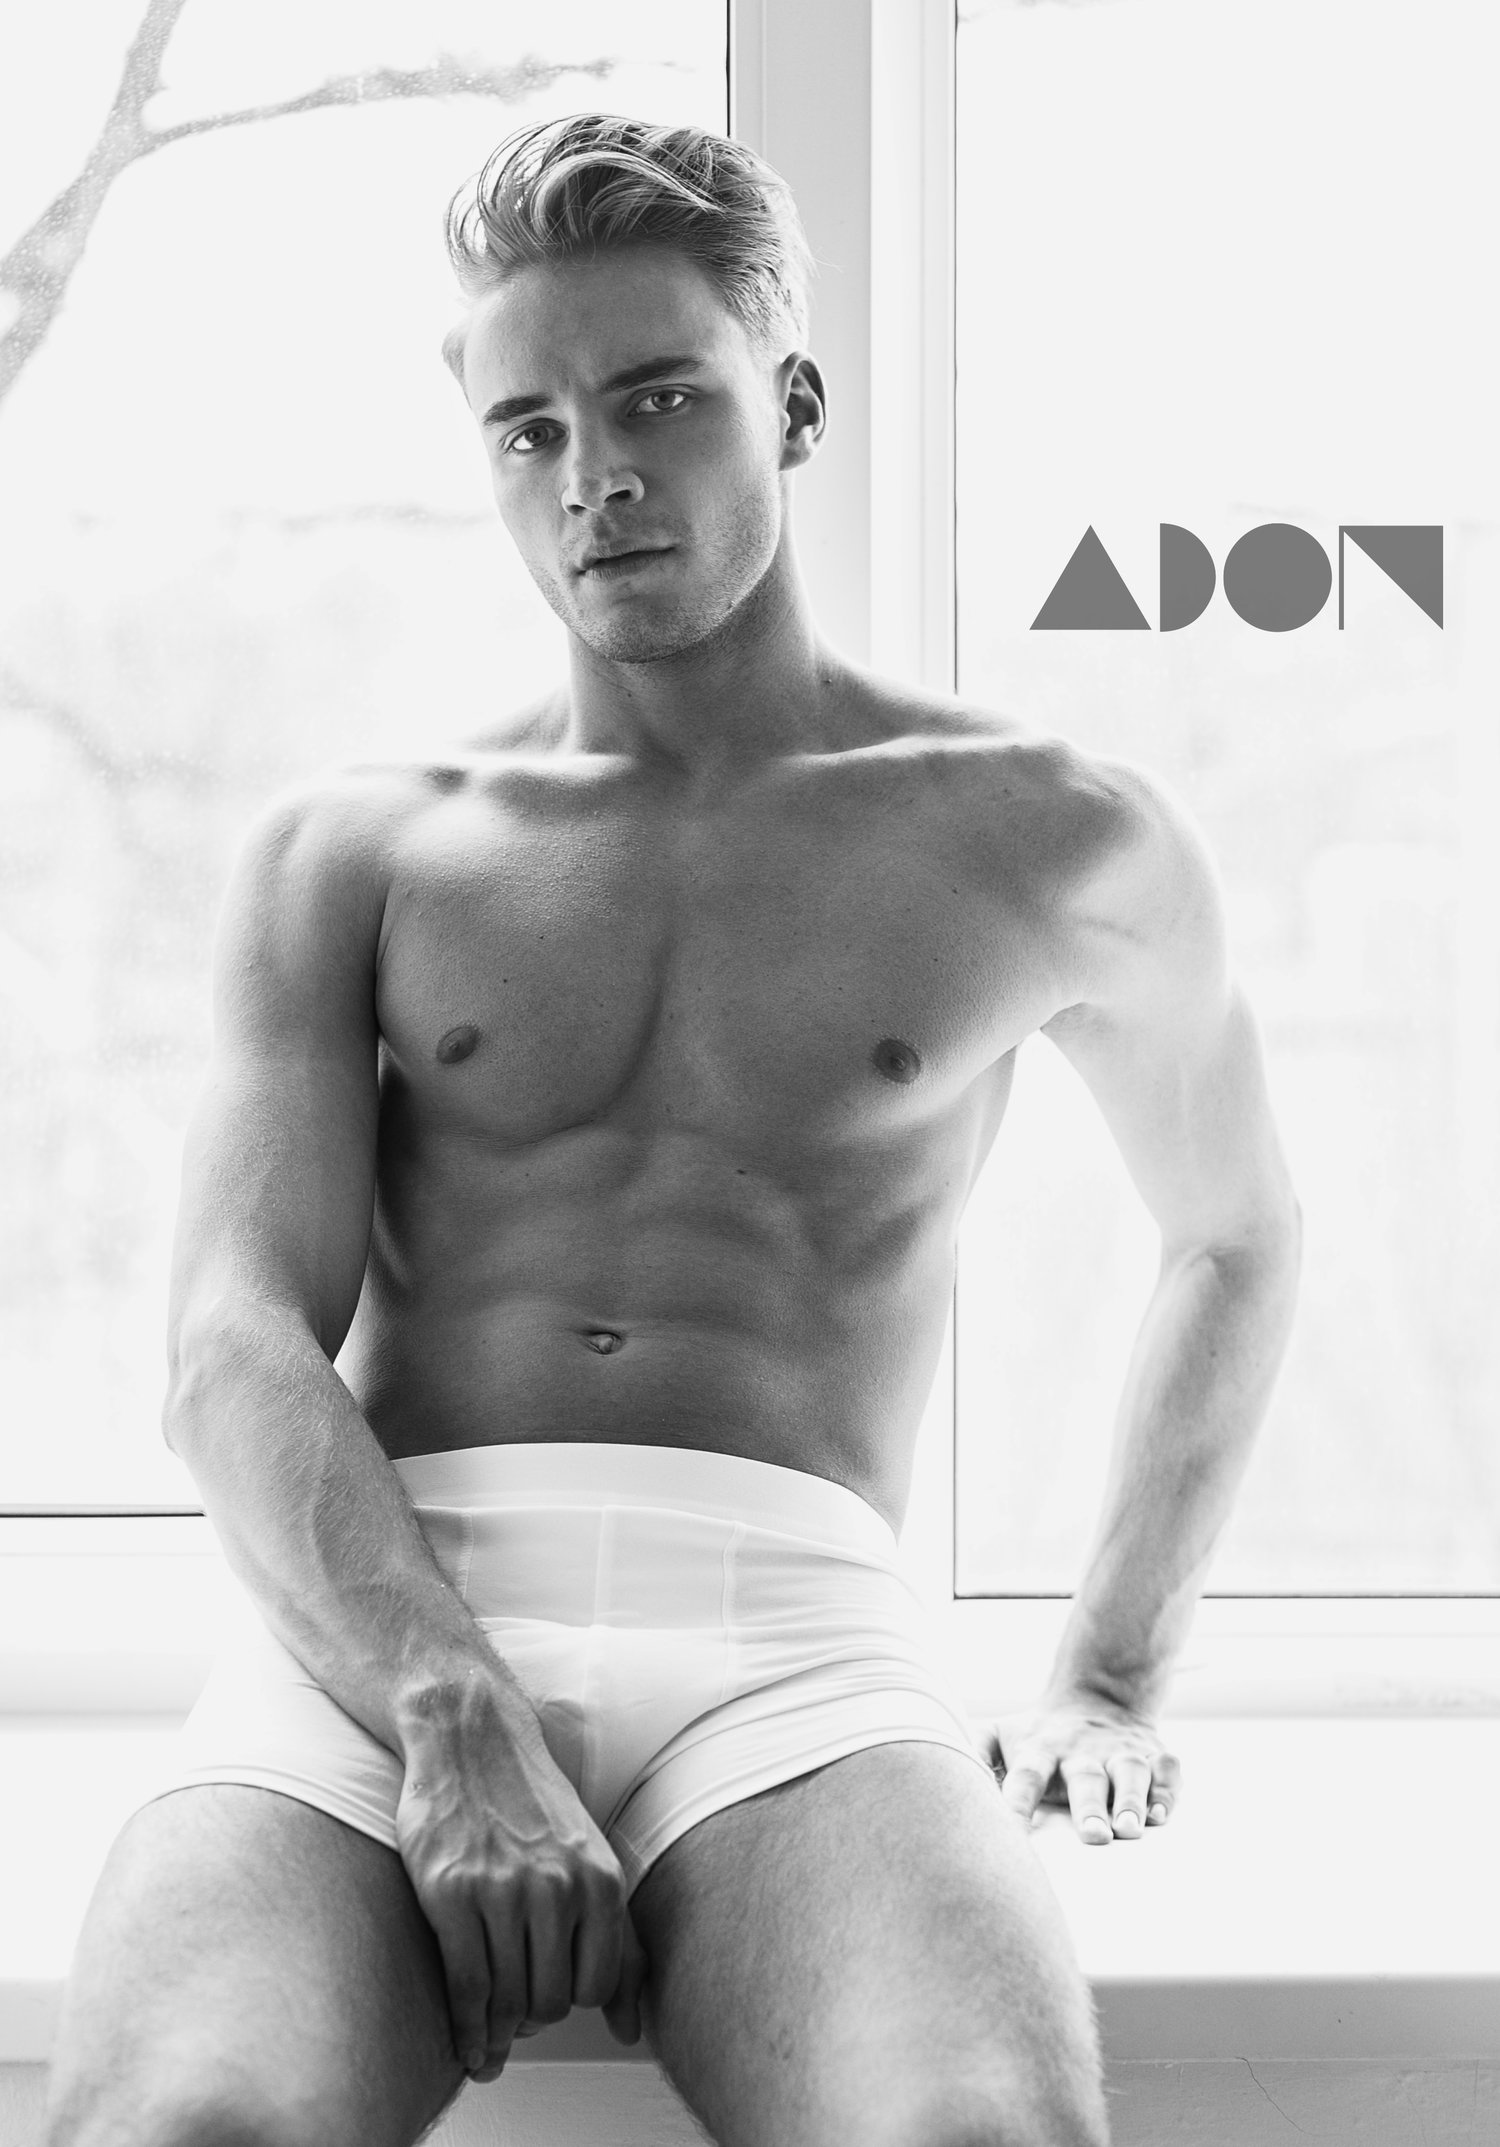 Adon Exclusive: Model Aleksander Sherlygin By Pavel Lepikhin